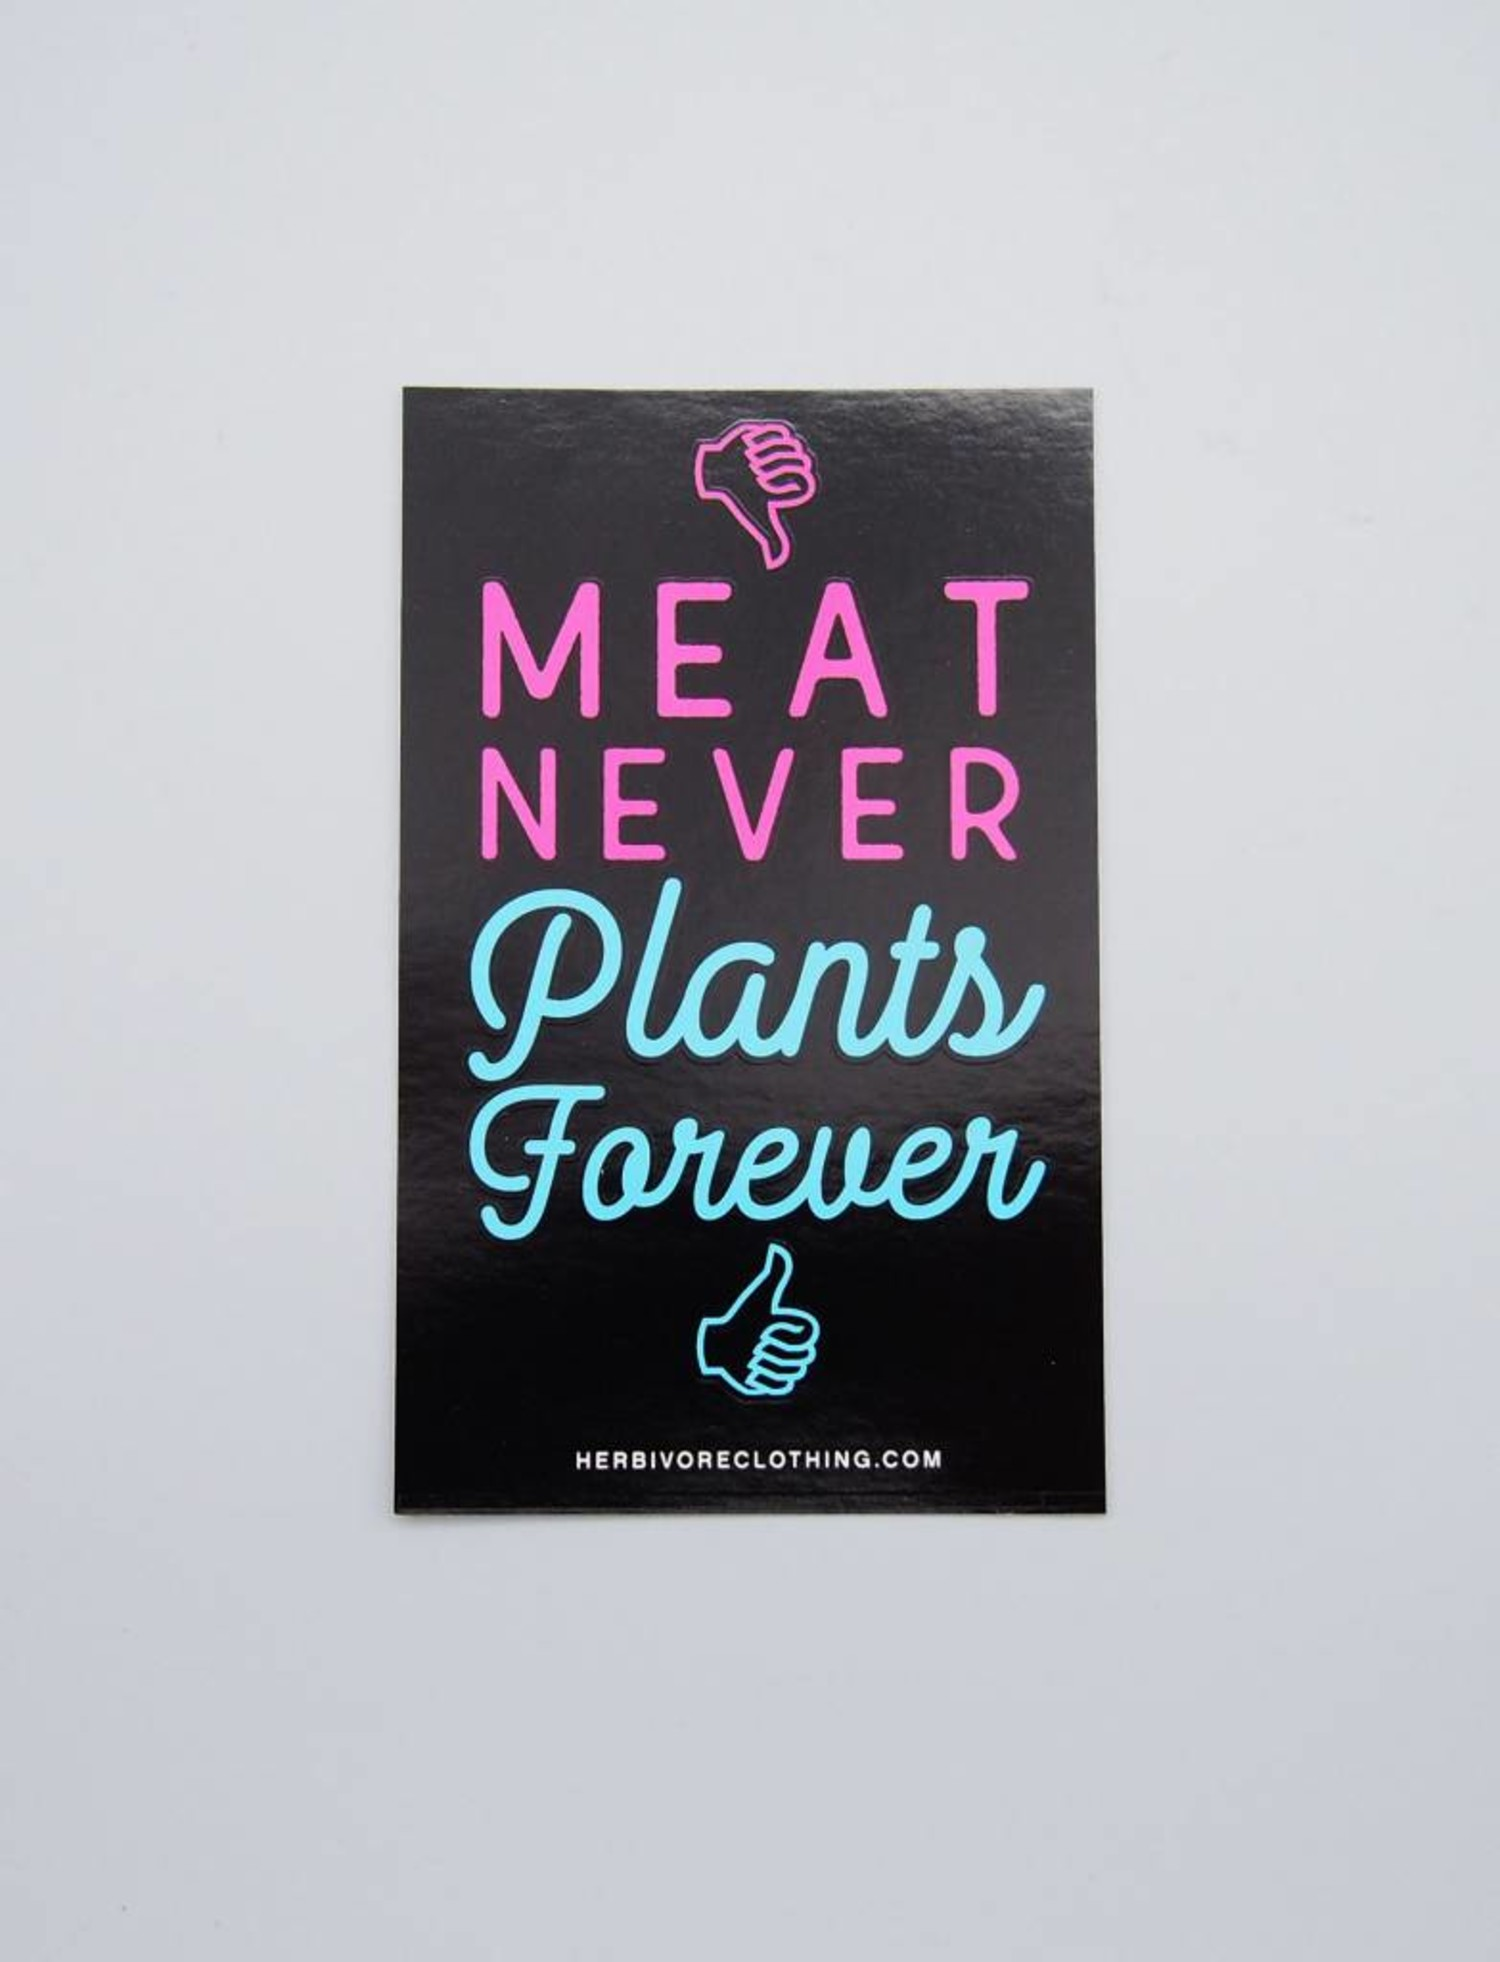 Meat Never Plants Forever Sticker - The Herbivore Clothing Co